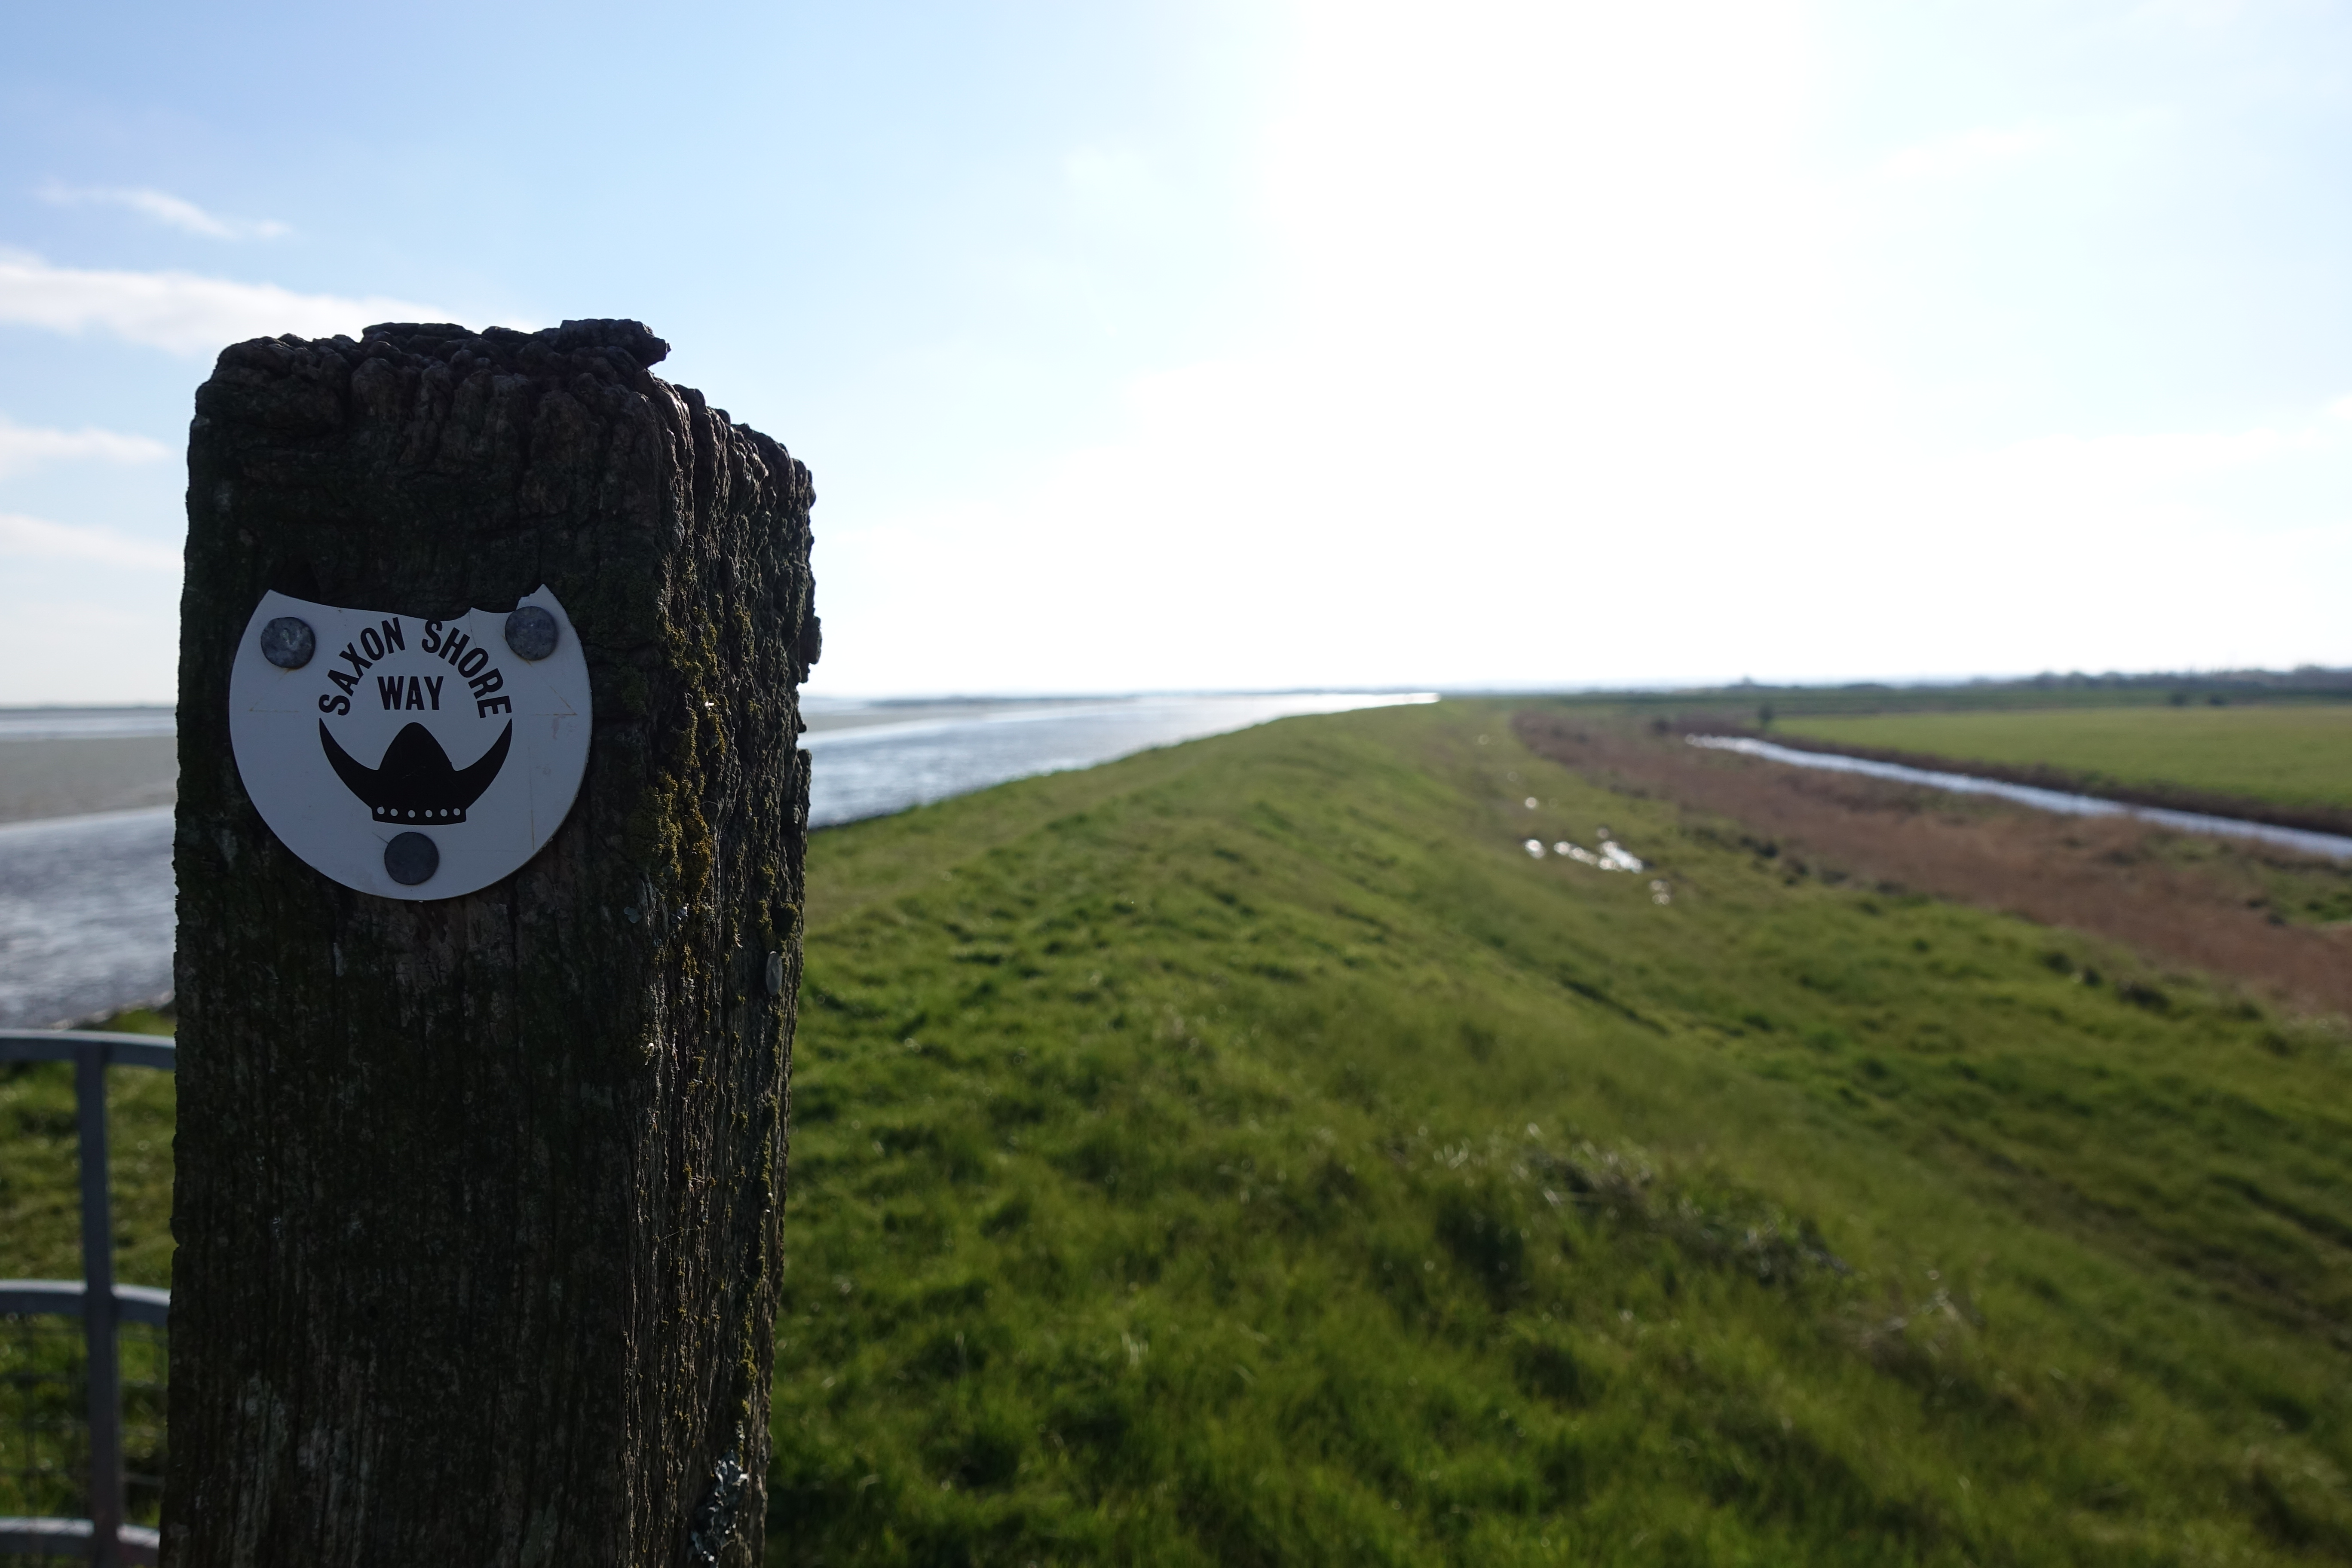 Today's walk would follow the Saxon Shore Way on the seawall between two once thriving North Kent towns